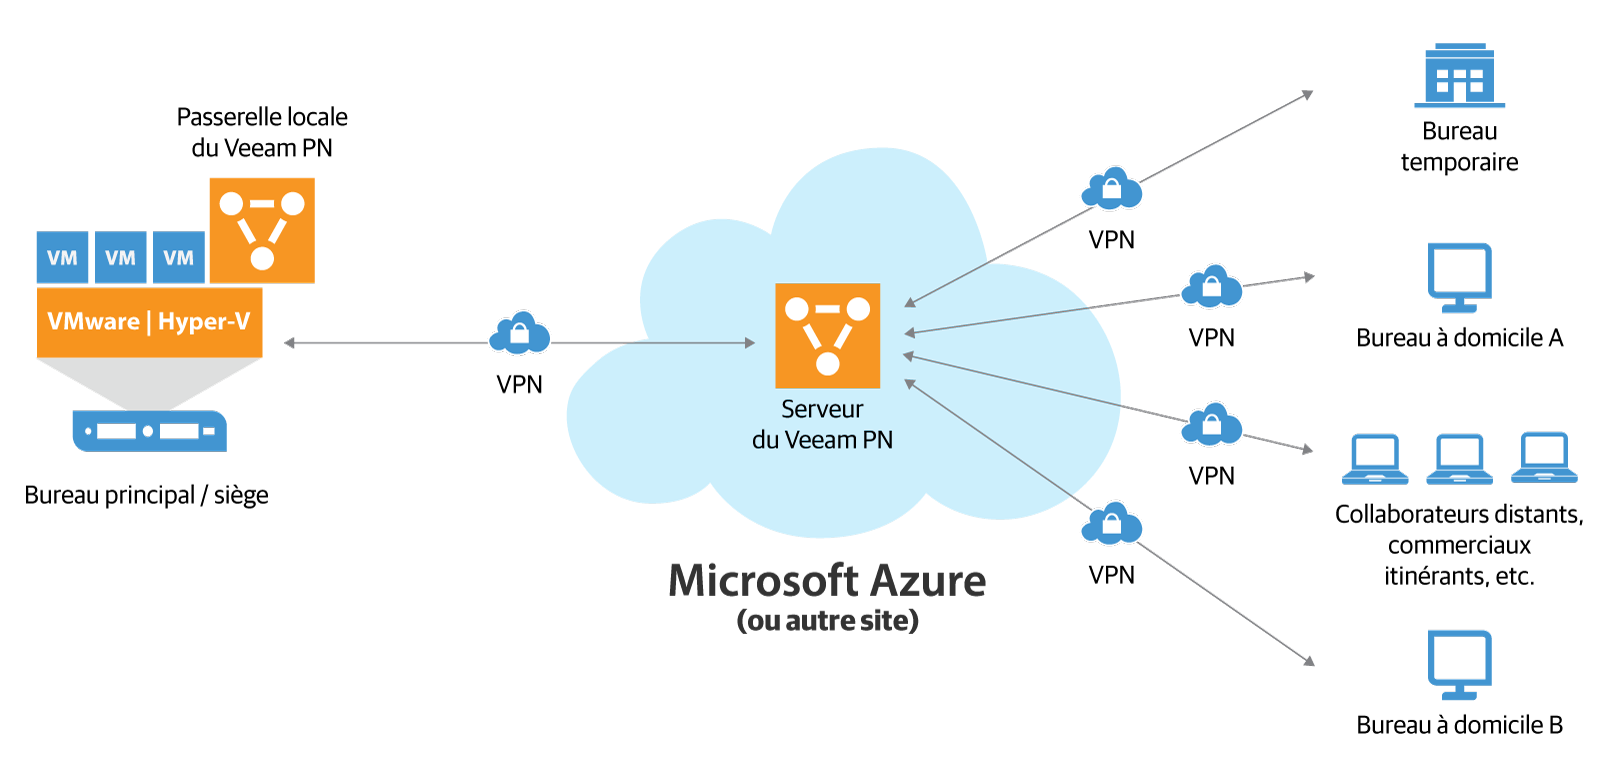 Veeam PN pour Microsoft Azure facilite les connexions point à point entre les clients distants et le bureau central. (VPN = réseau privé virtuel, Veeam PN = Veeam Powered Network).